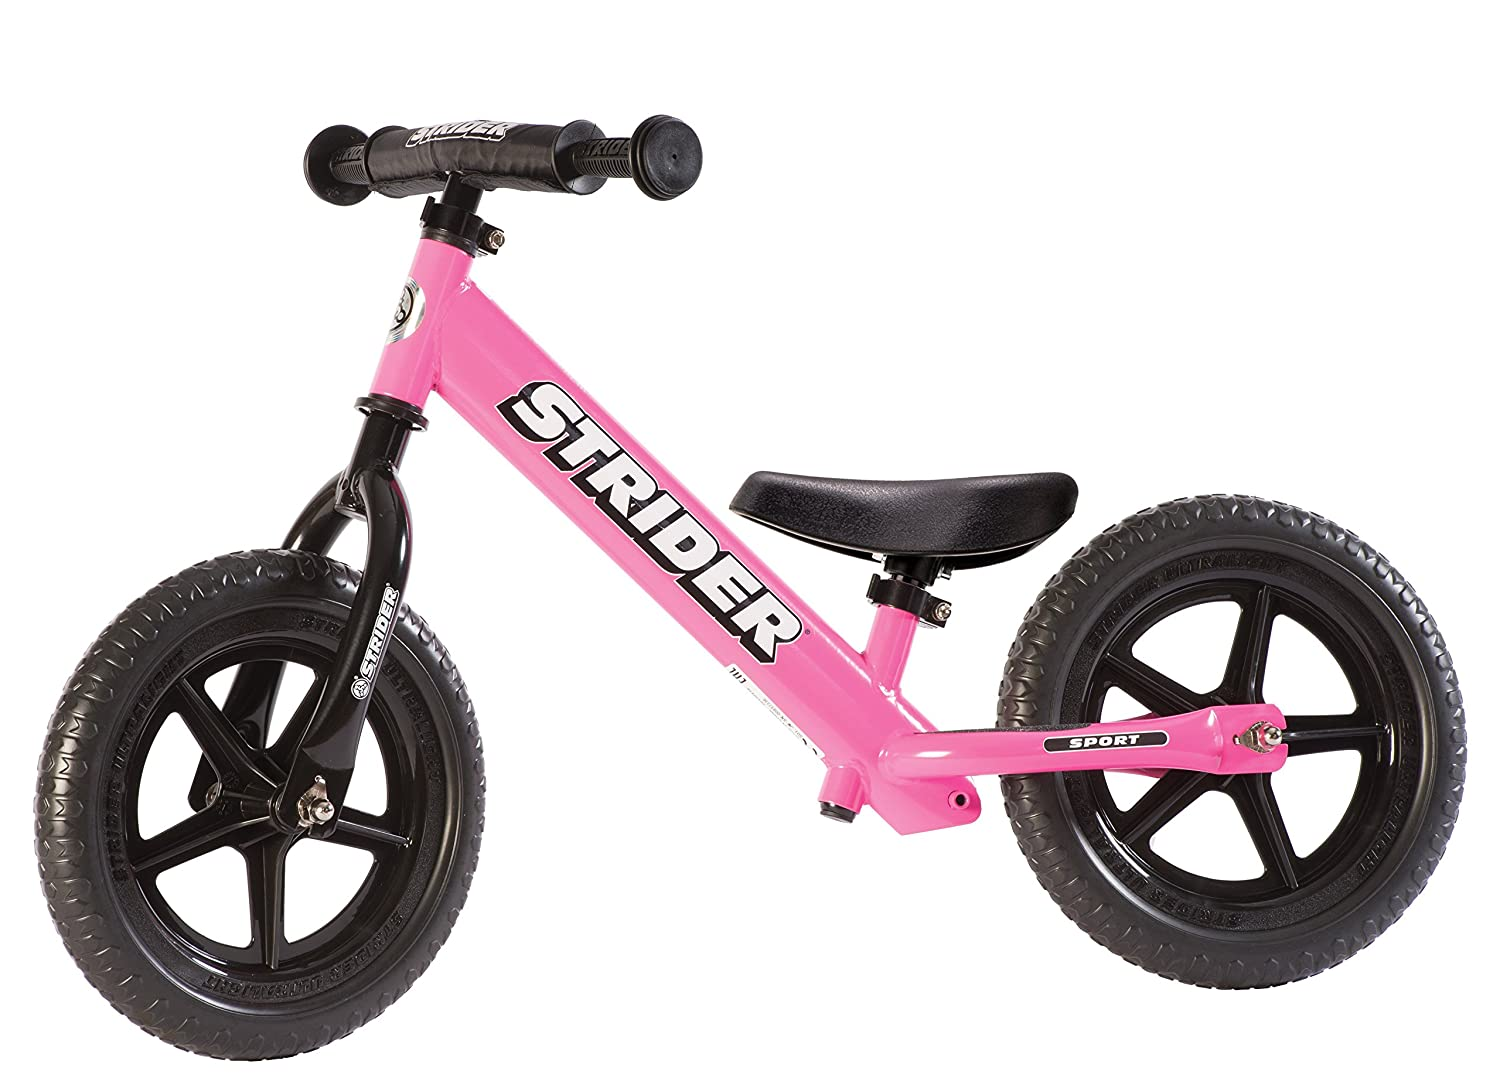 Top 11 Best Balance Bikes for Toddlers Reviews in 2020 2